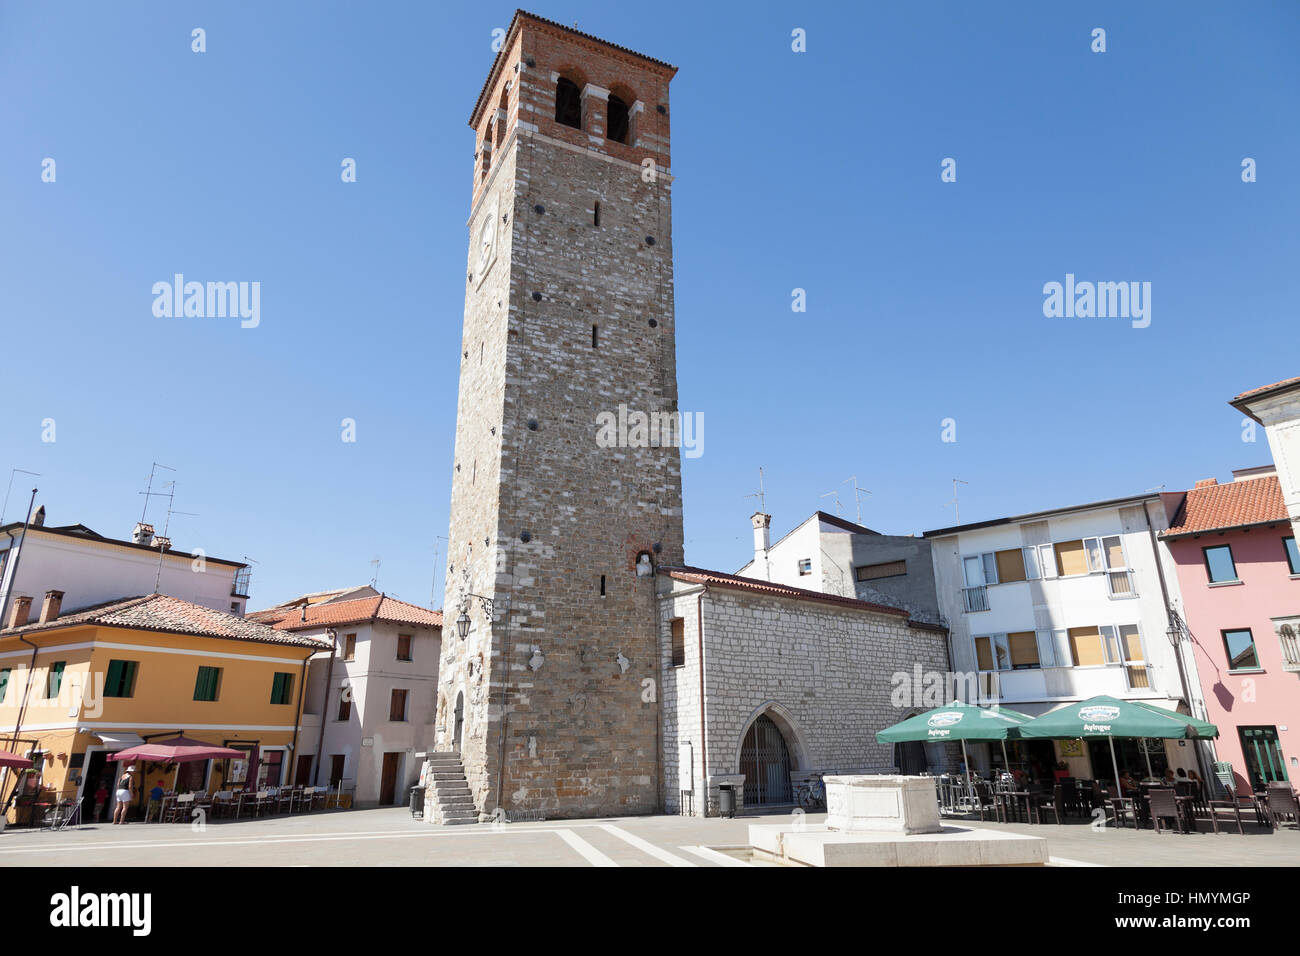 Old town and old tower of Marano Lagunare Stock Photo